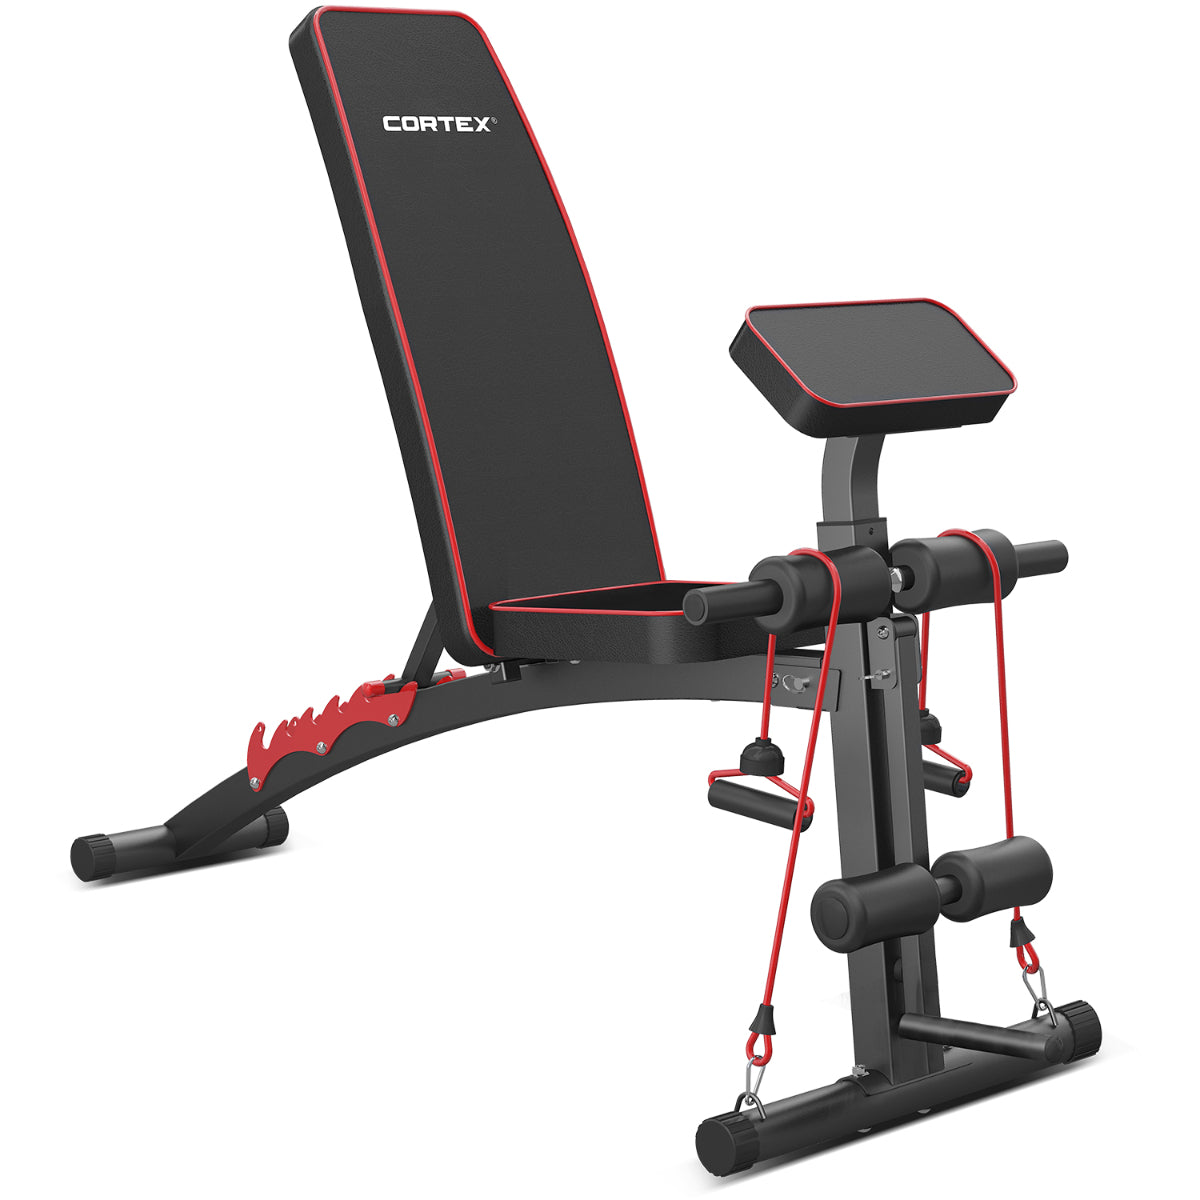 CORTEX BN-2 Adjustable Bench | Lifespan Fitness